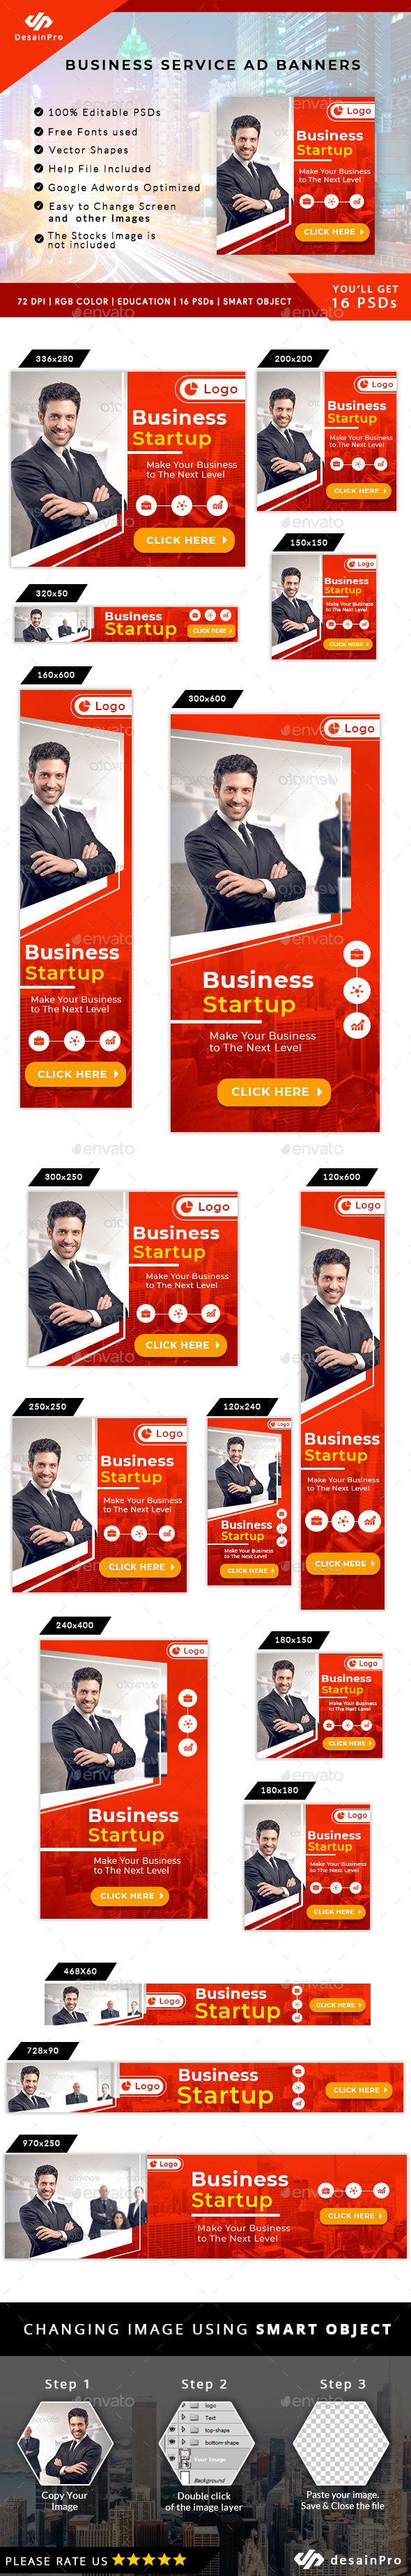 Business Solutions Ad Banners - AR - Banners & Ads Web Elements